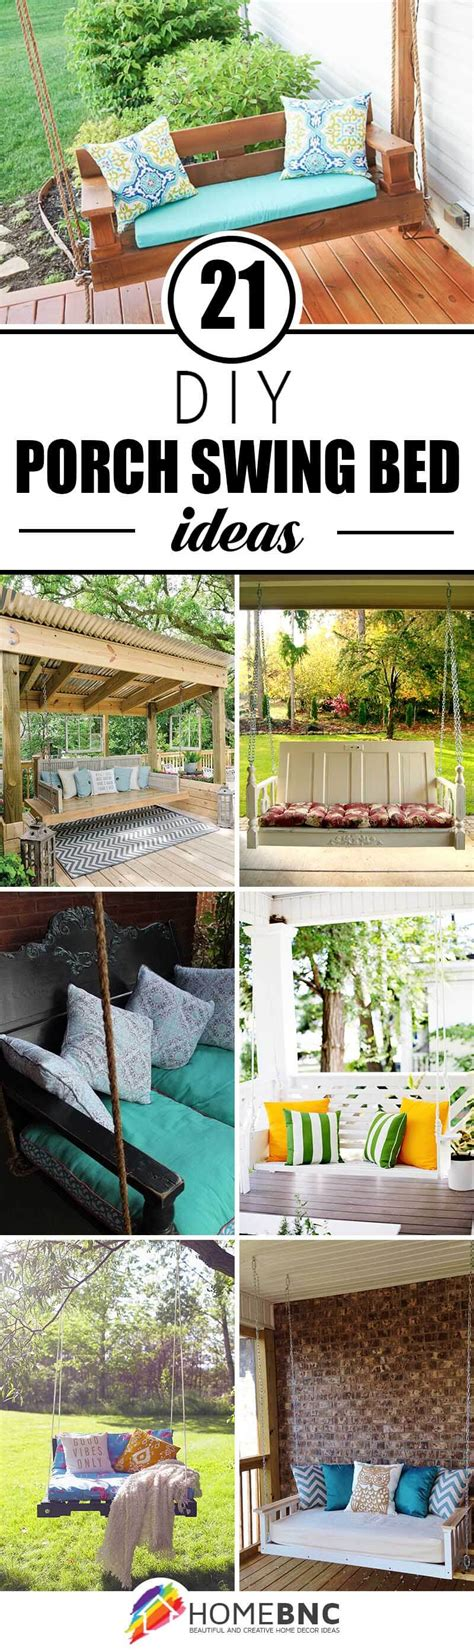 diy porch swing bed how to build a porch swing bed diy porch swing bed decoration ideas belham living